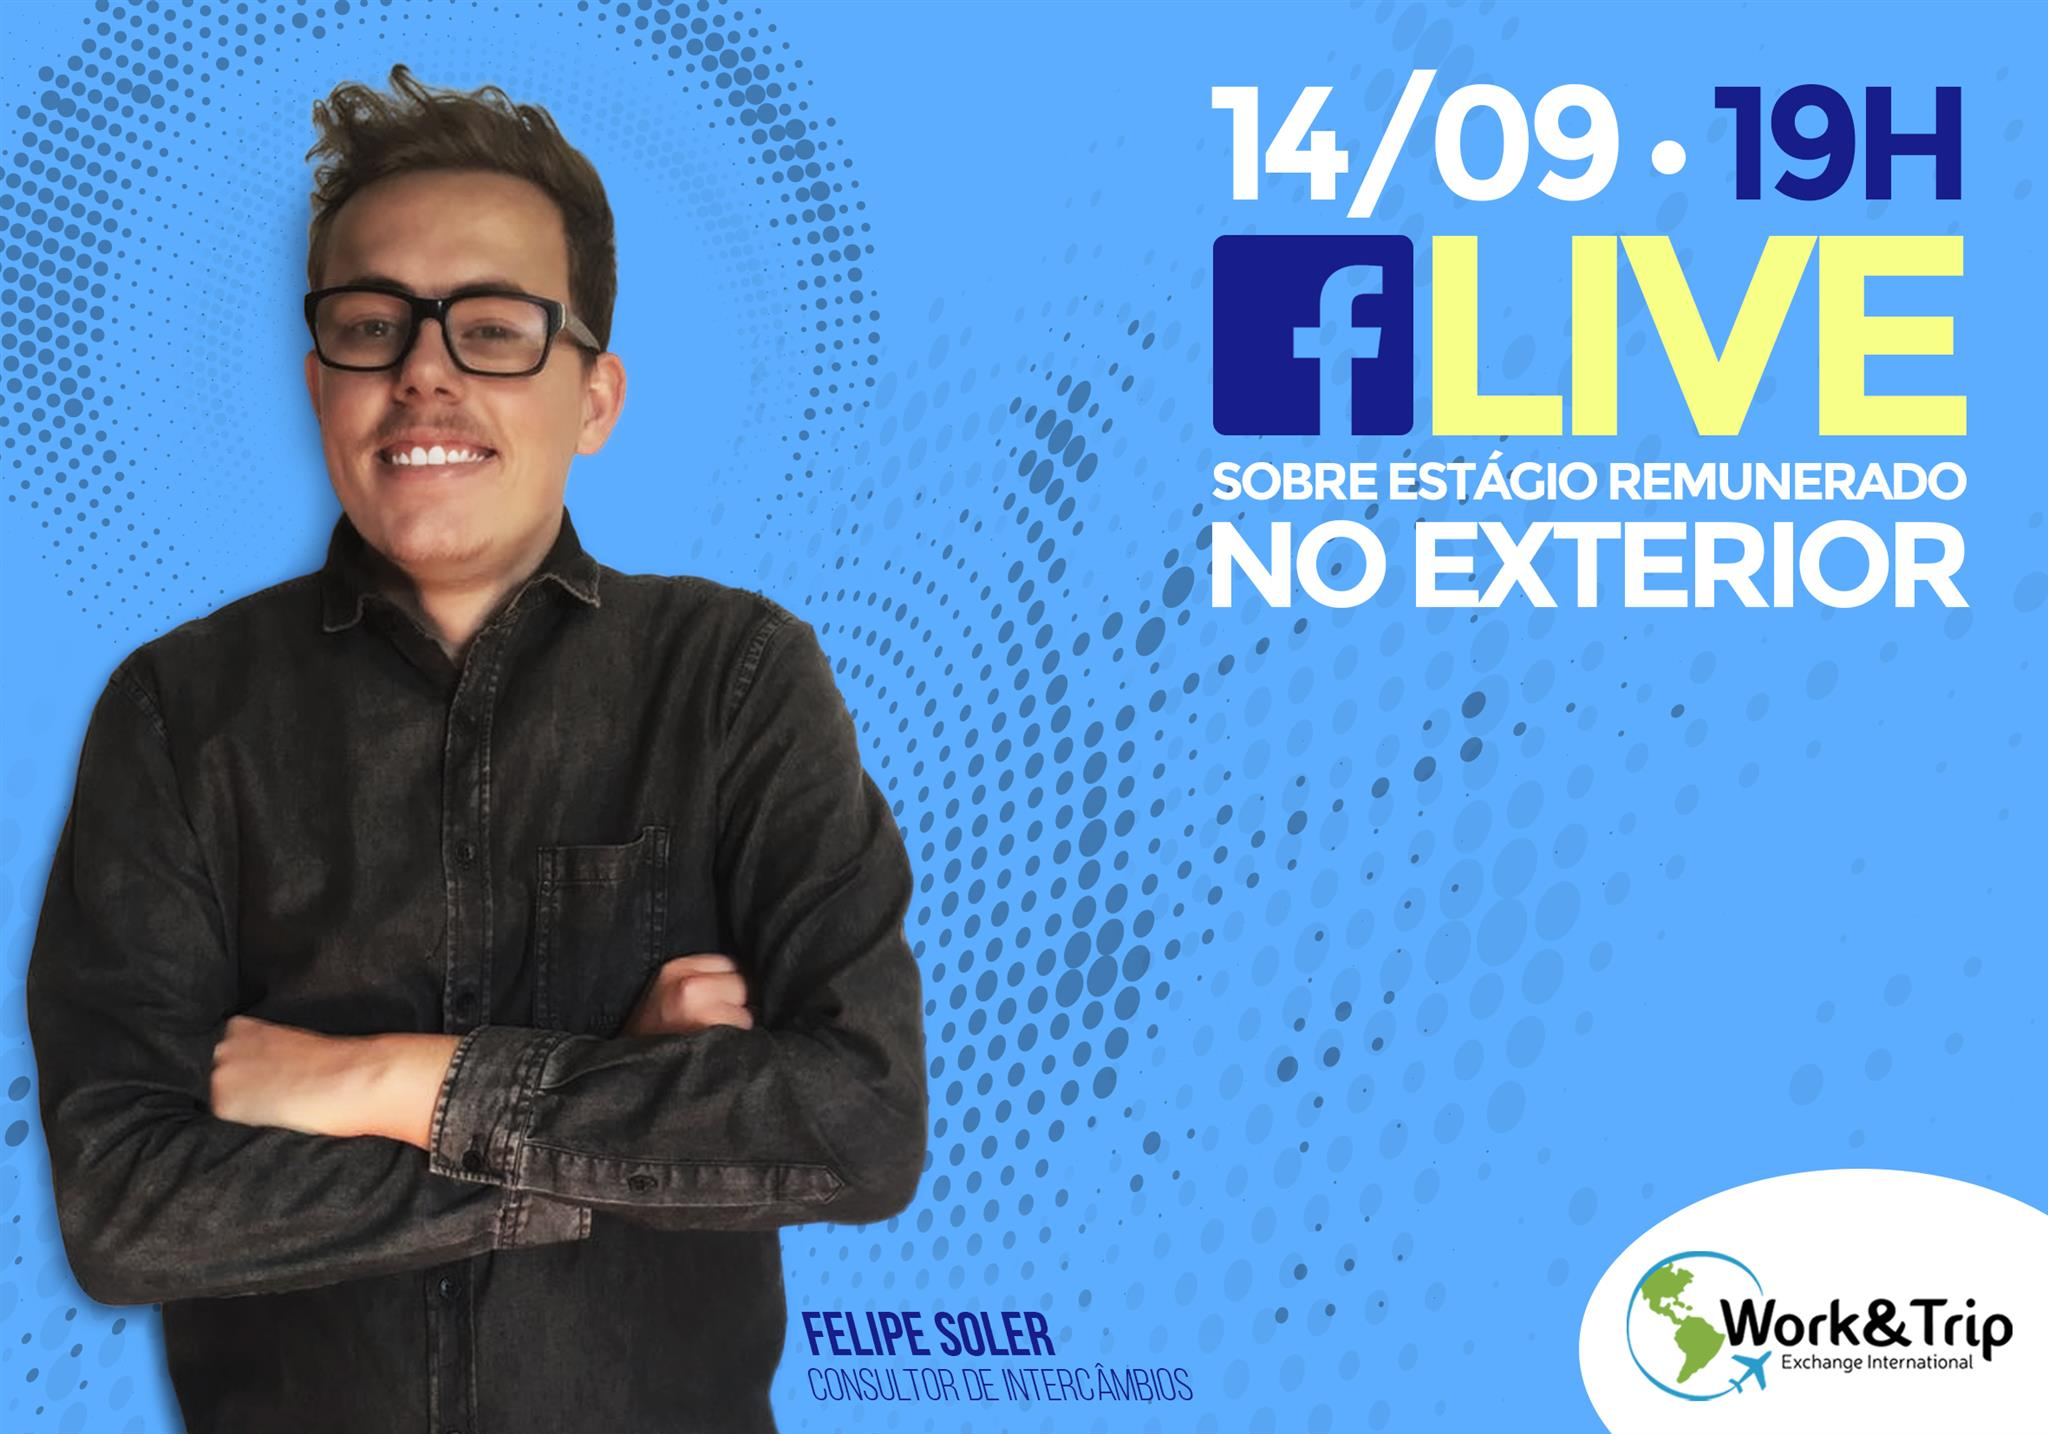 LIVE AO VIVO NO FACEBOOK DIA 14/09